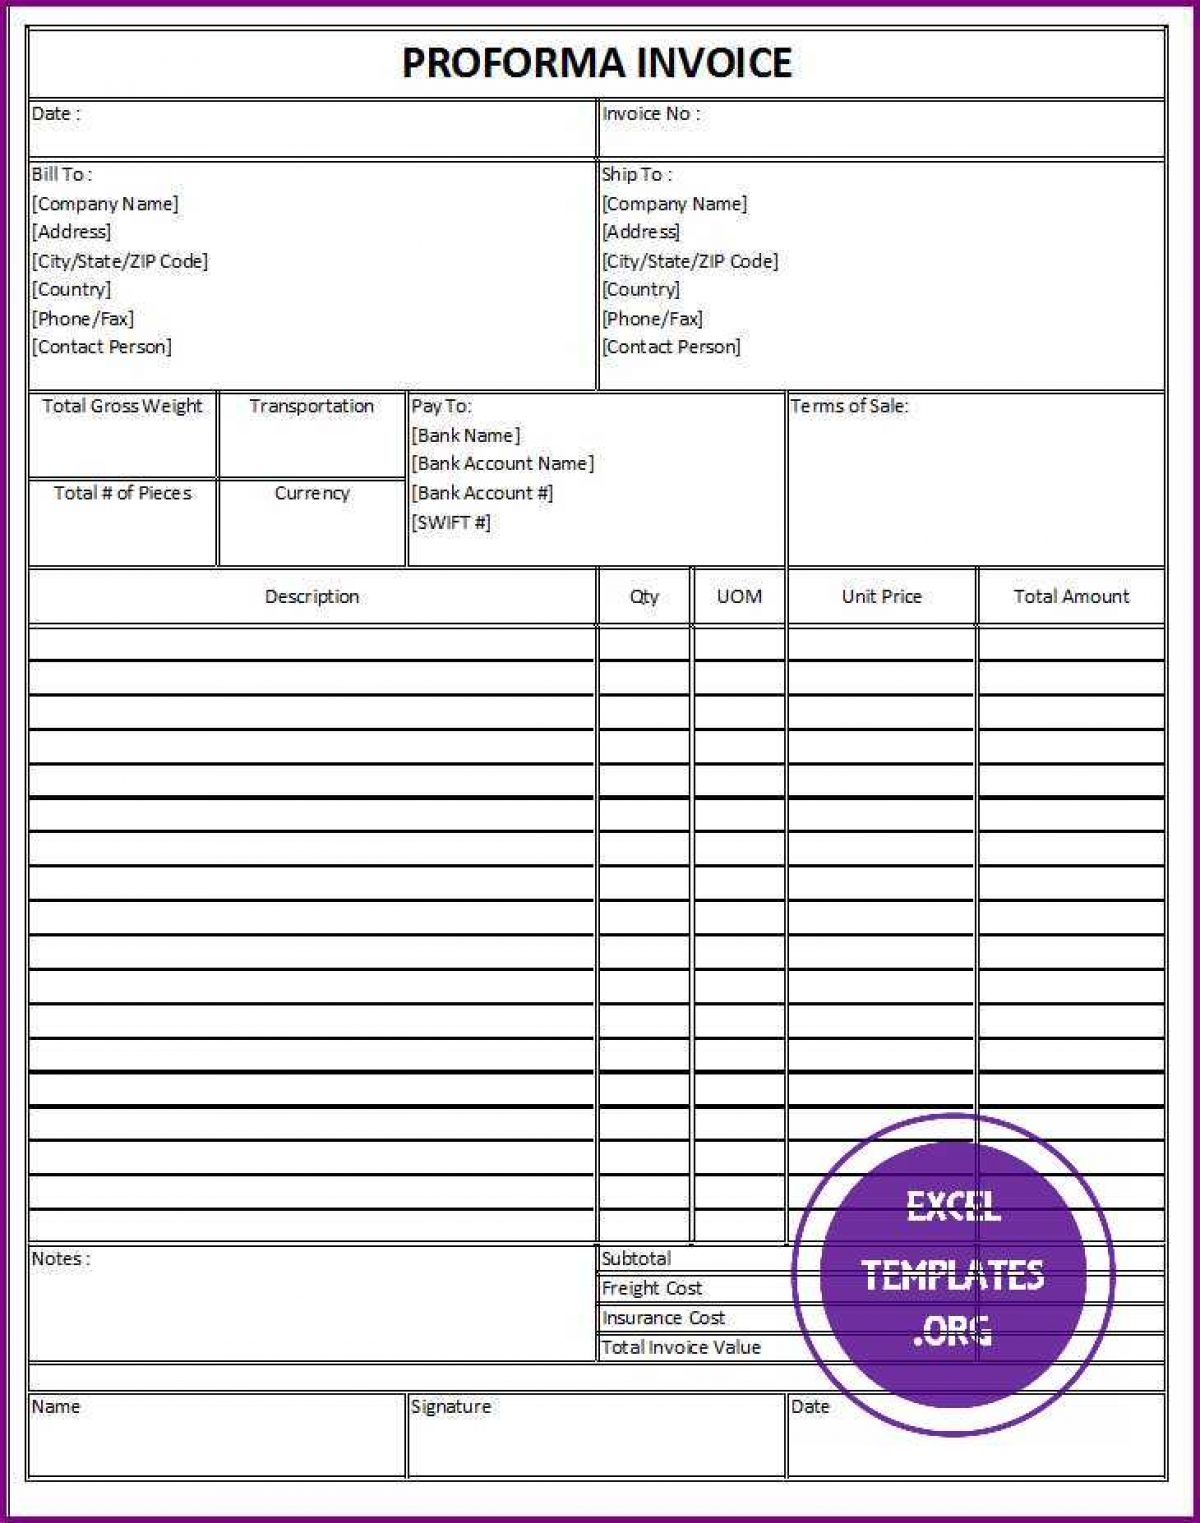 Proforma Invoice Template Exceltemplates Org